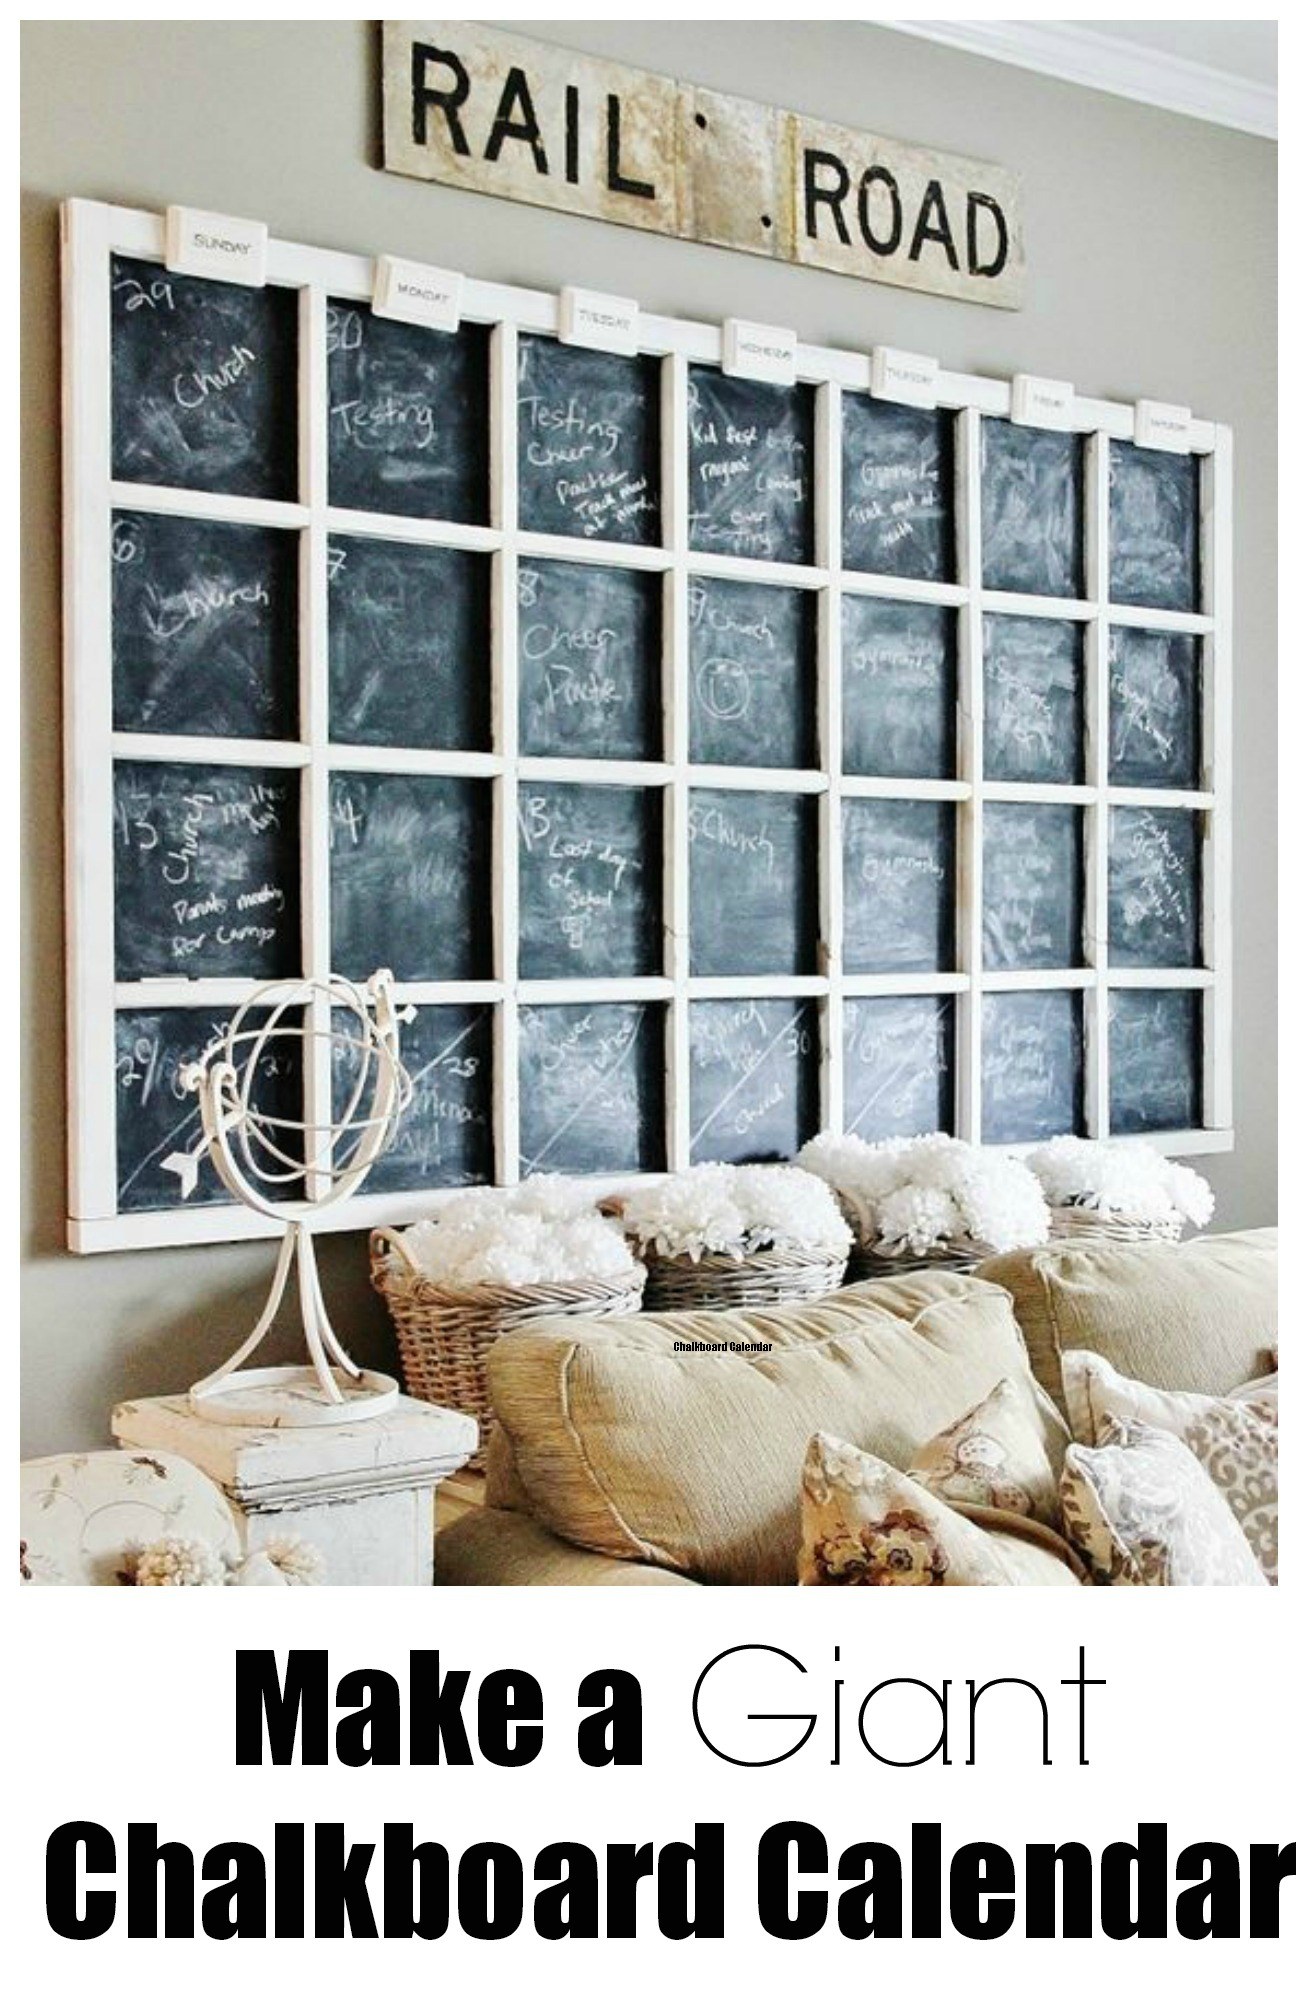 Diy Giant Calendar : Chalkboard calendar diys guide patterns